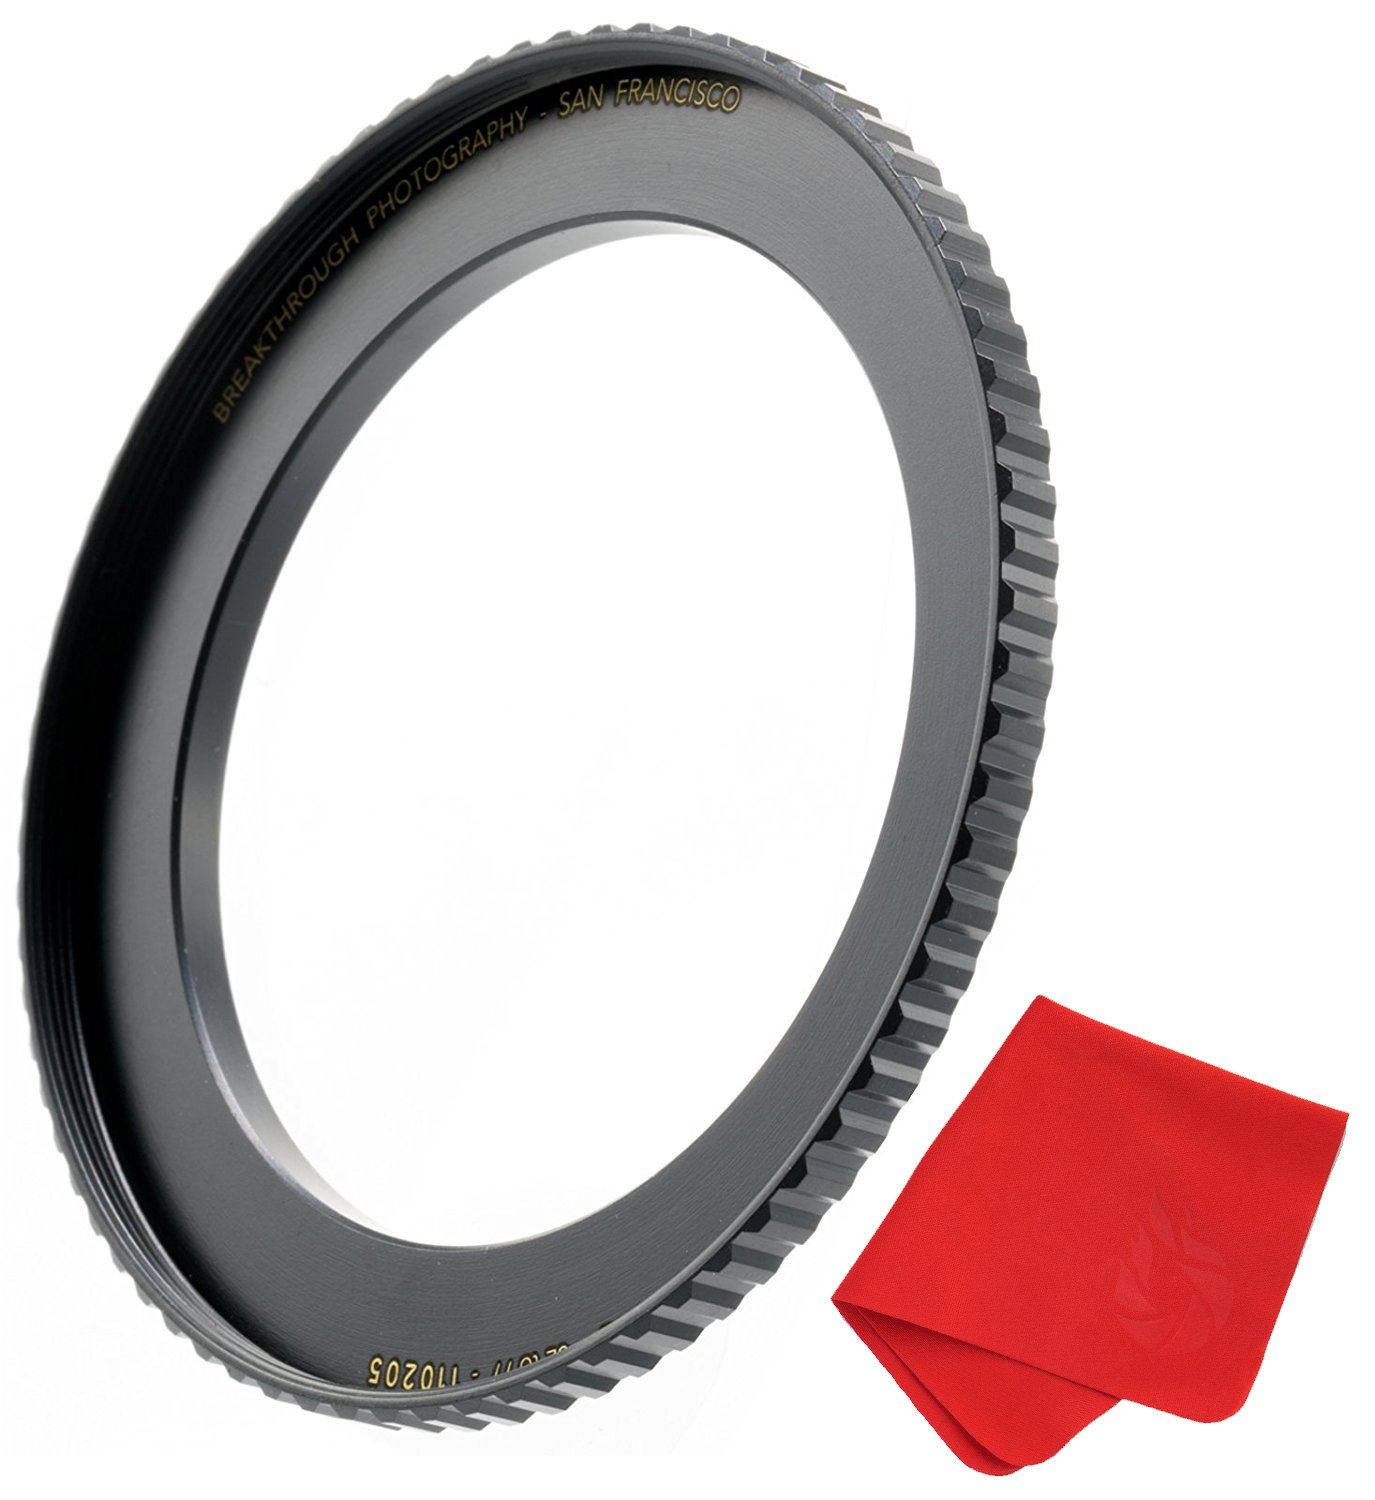 Breakthrough Photography 77mm to 82mm Step-Up Lens Adapter Ring for Filters Made of CNC Machined Brass with Matte Black Electroplated Finish